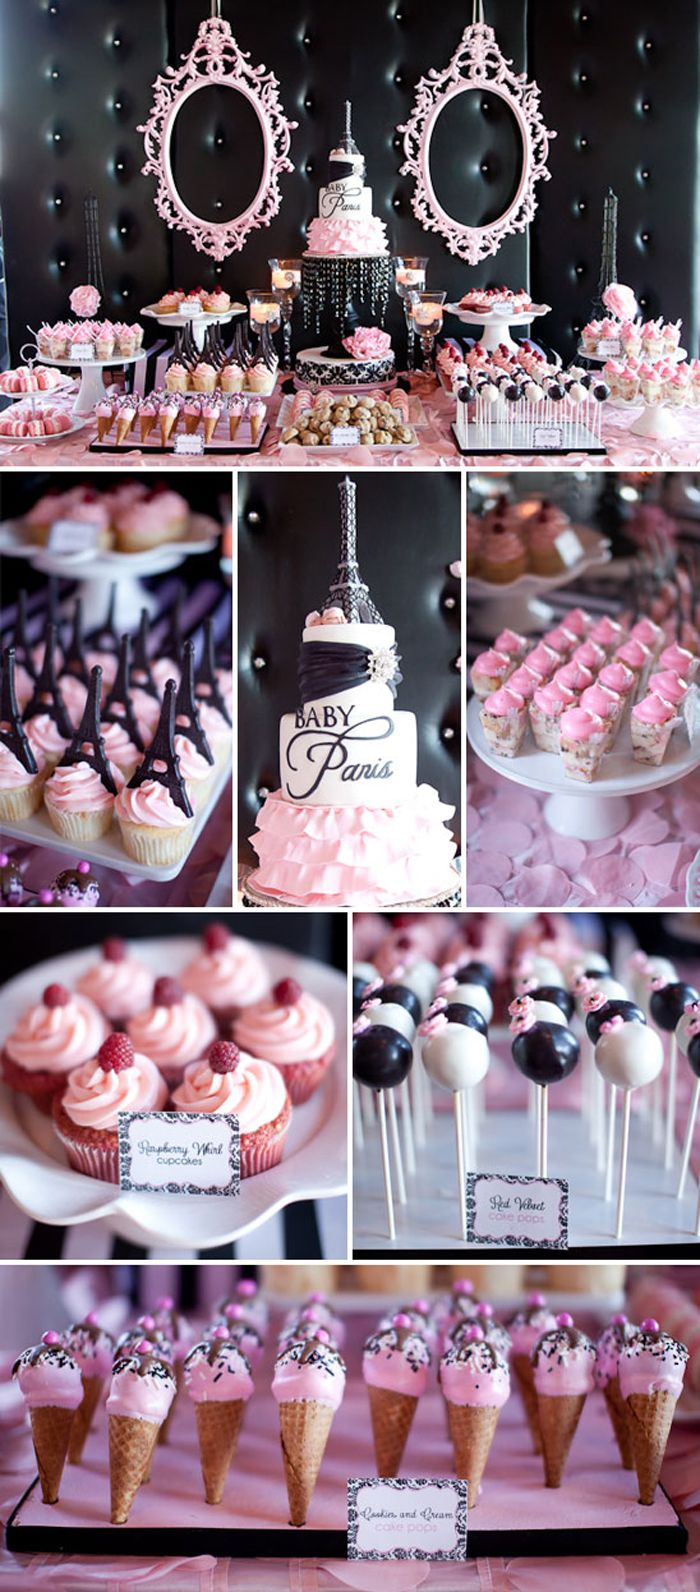 Paris Themed Baby Showerwould Be Amazing For My Future Bridal